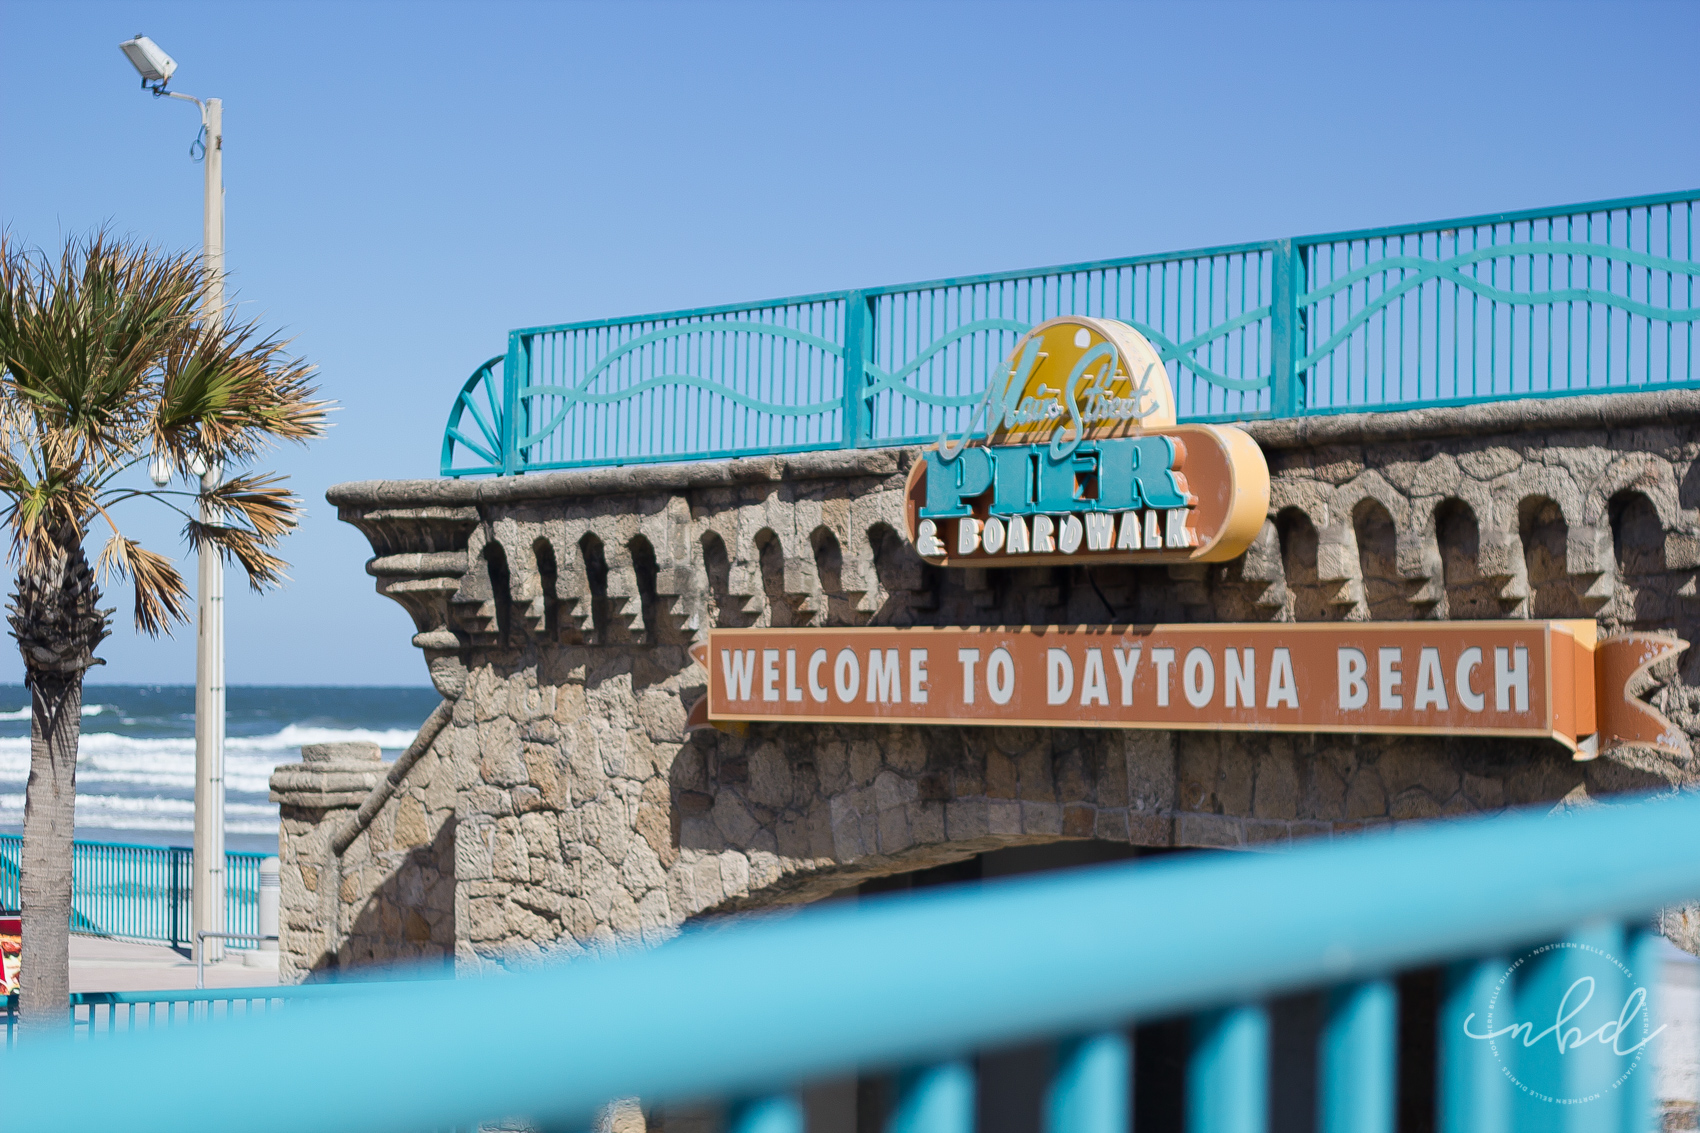 Main Street Pier & Boardwalk welcome sign - Daytona Beach